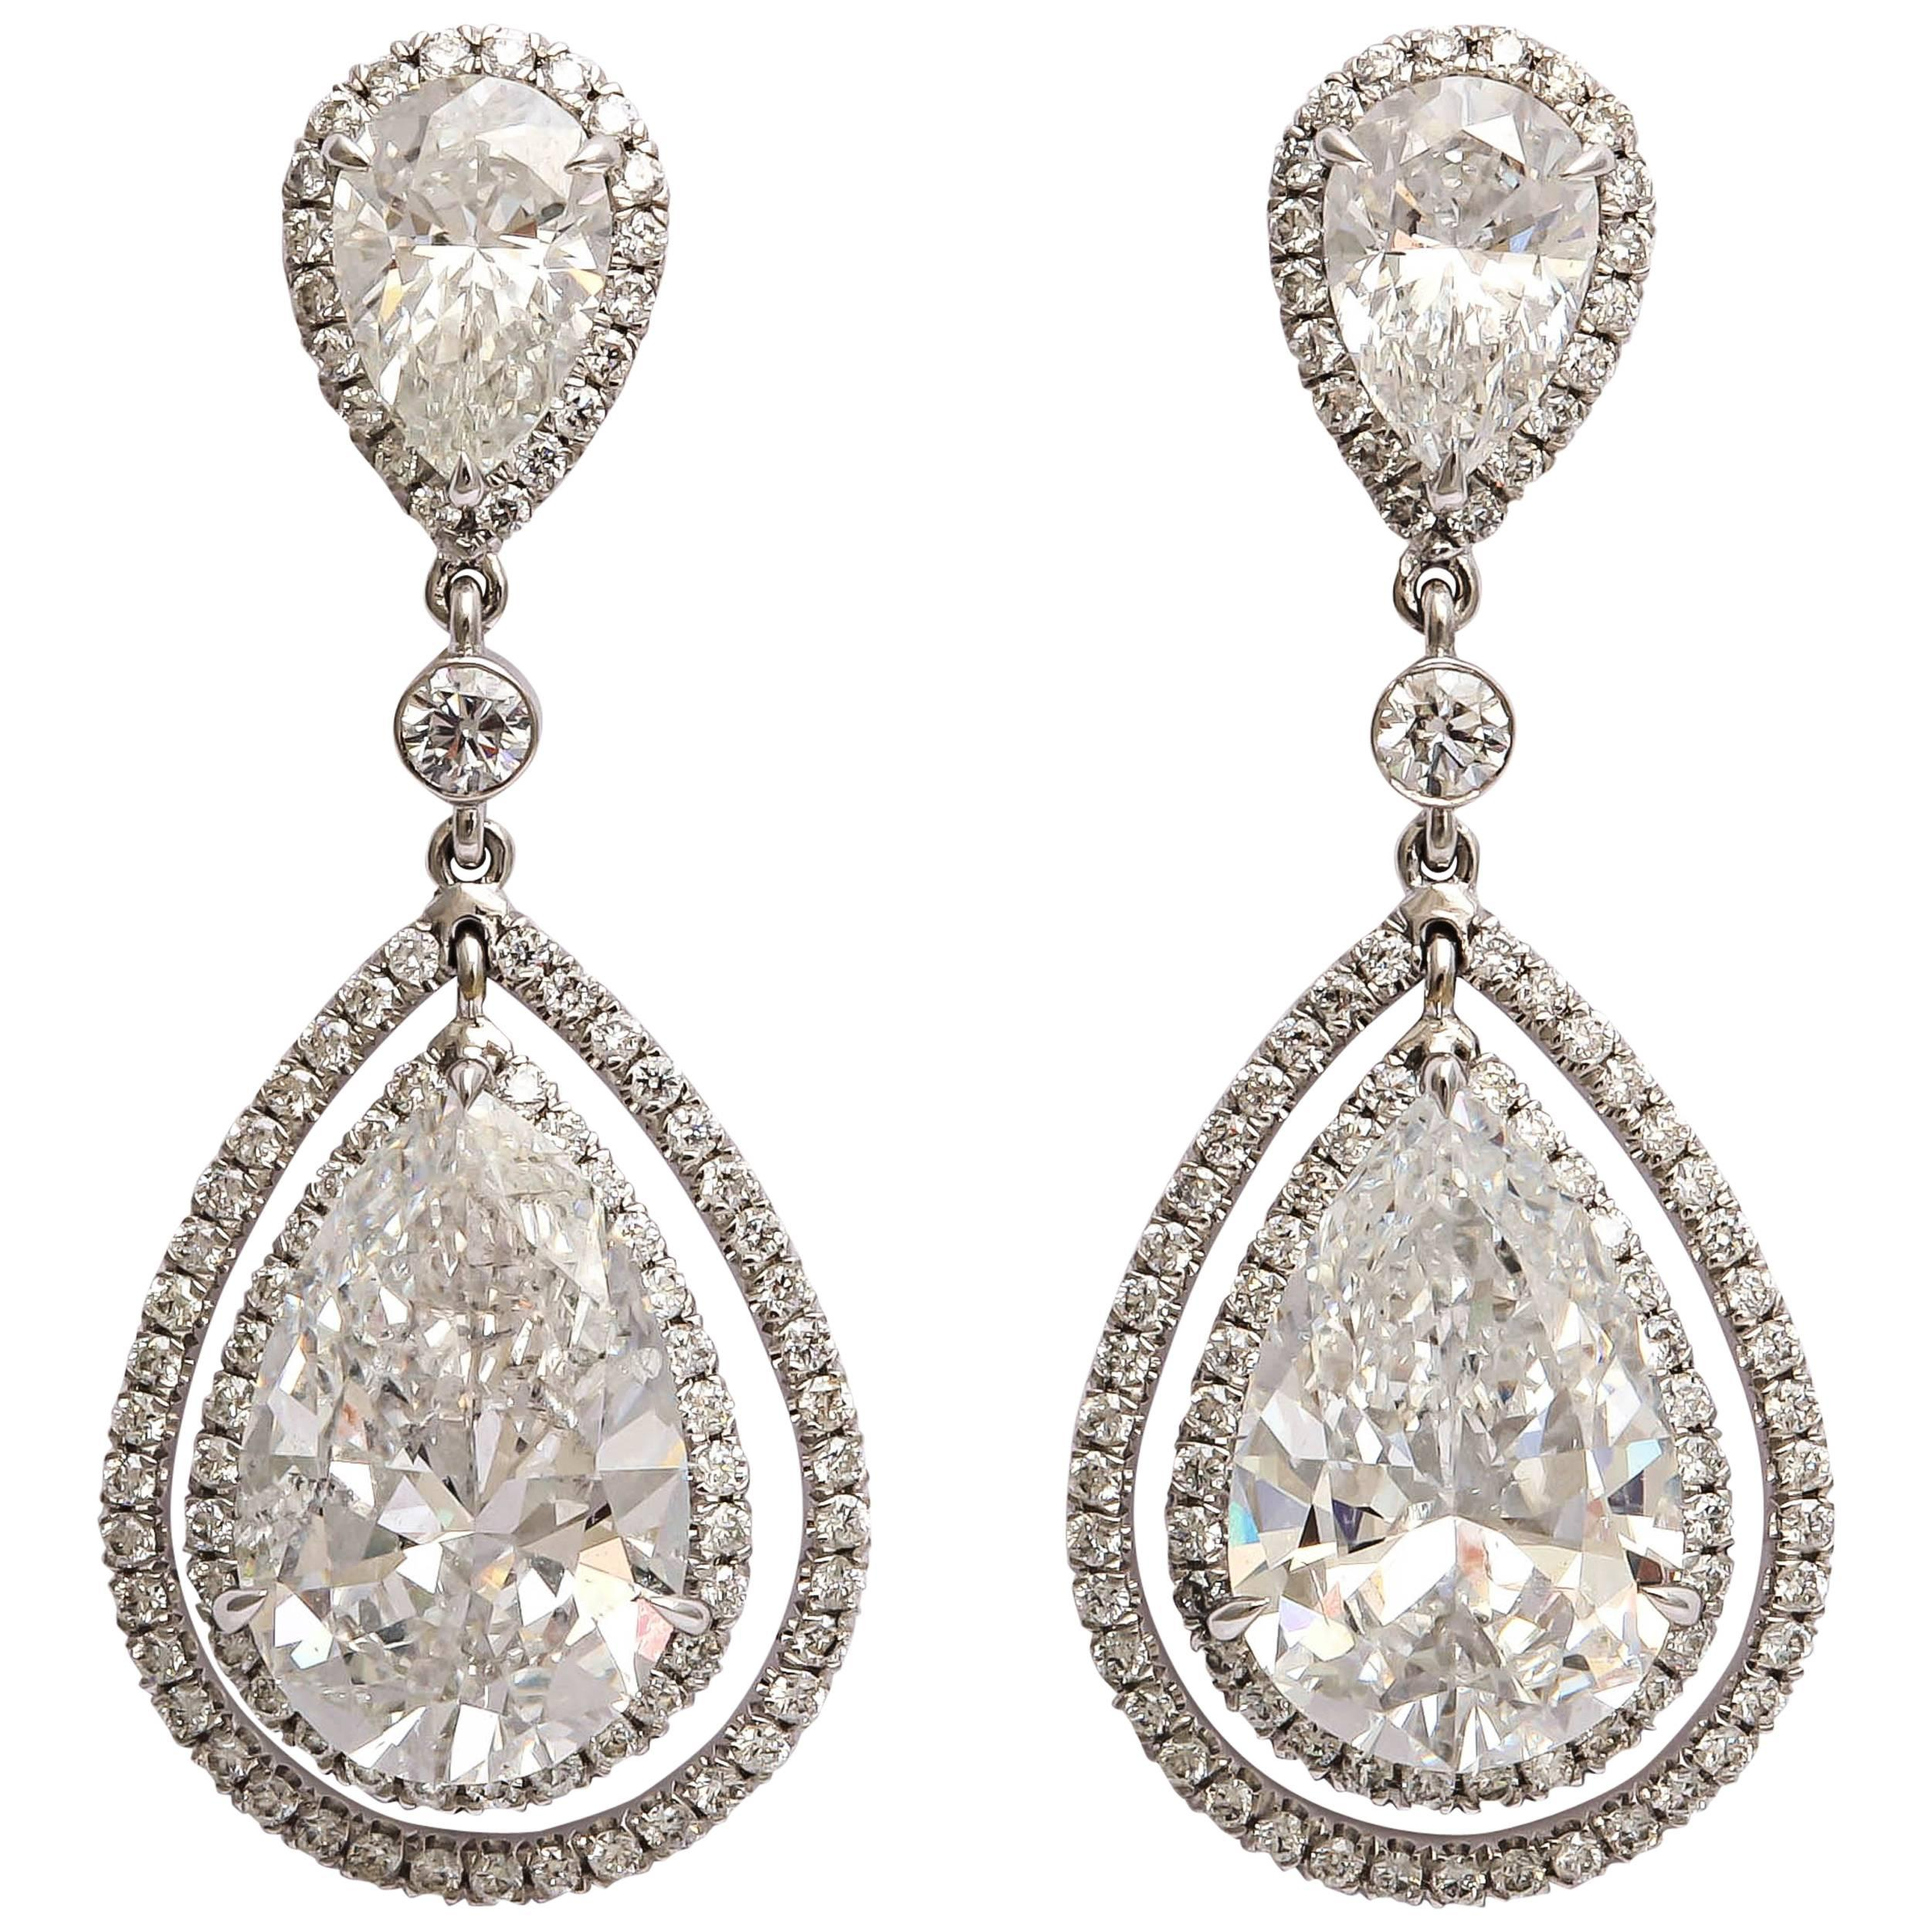 trading center copy to diamond pear archives wishlist add hpht diamonds product category